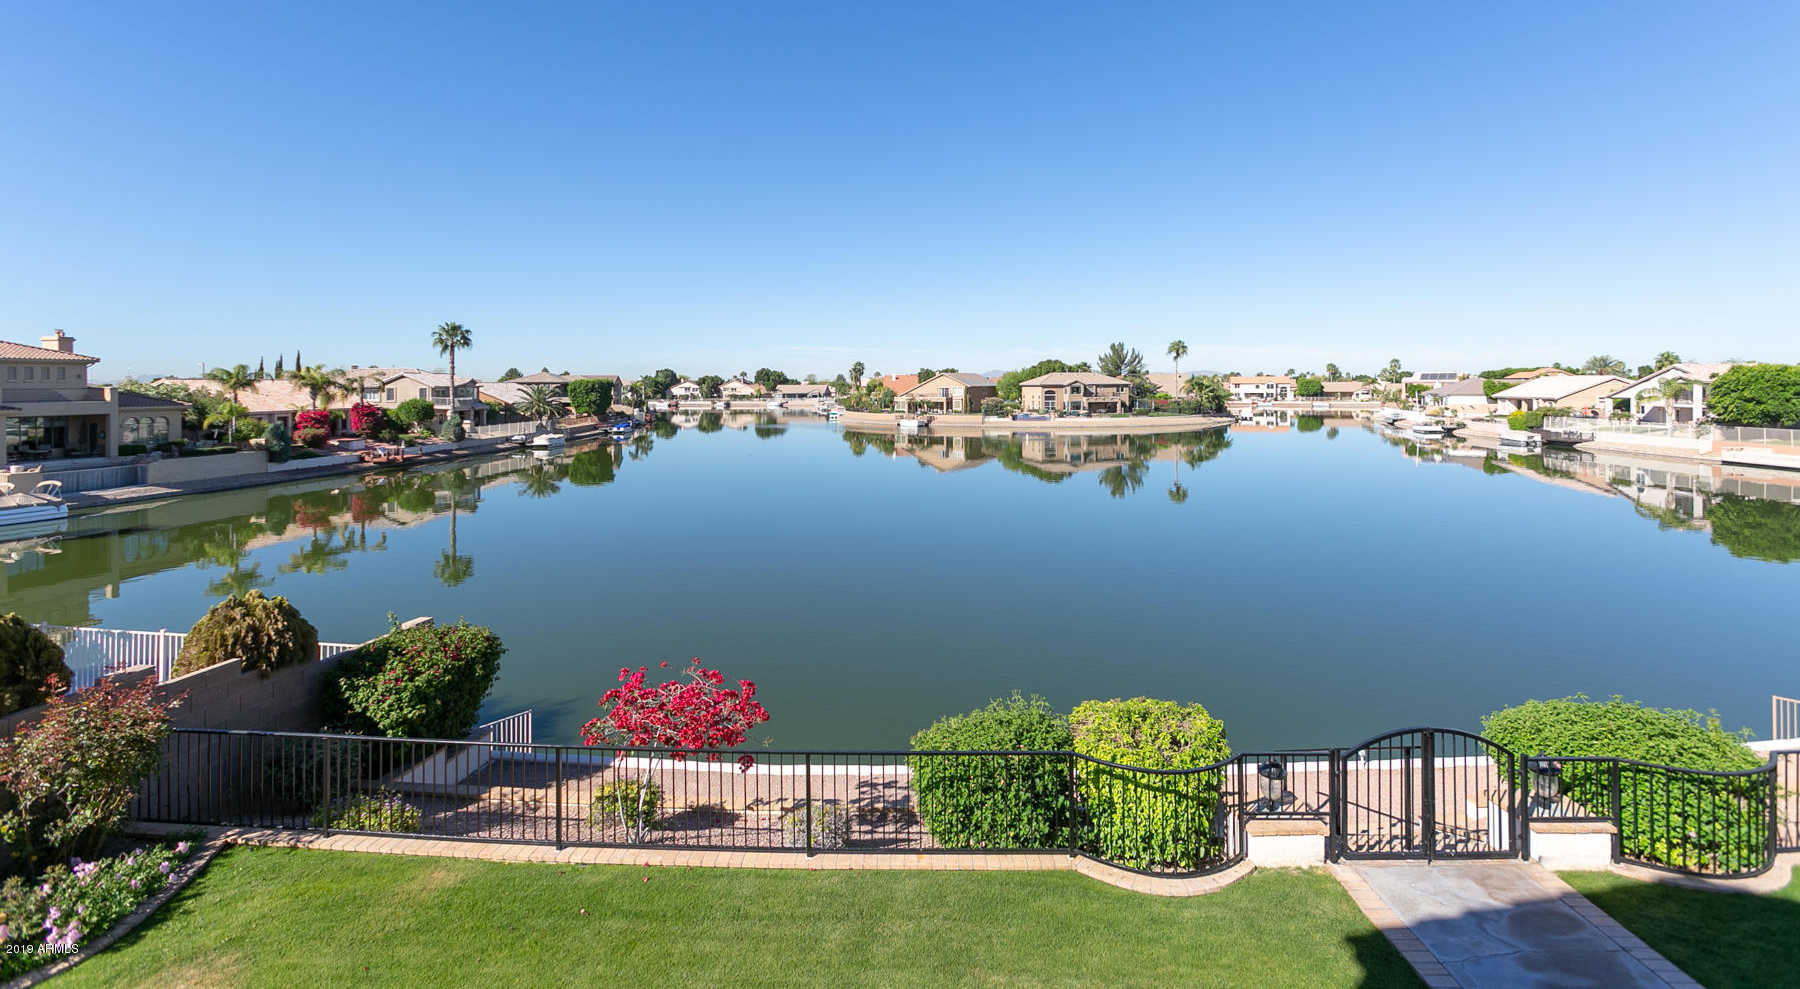 $579,000 - 4Br/3Ba - Home for Sale in Arrowhead Lakes, Glendale